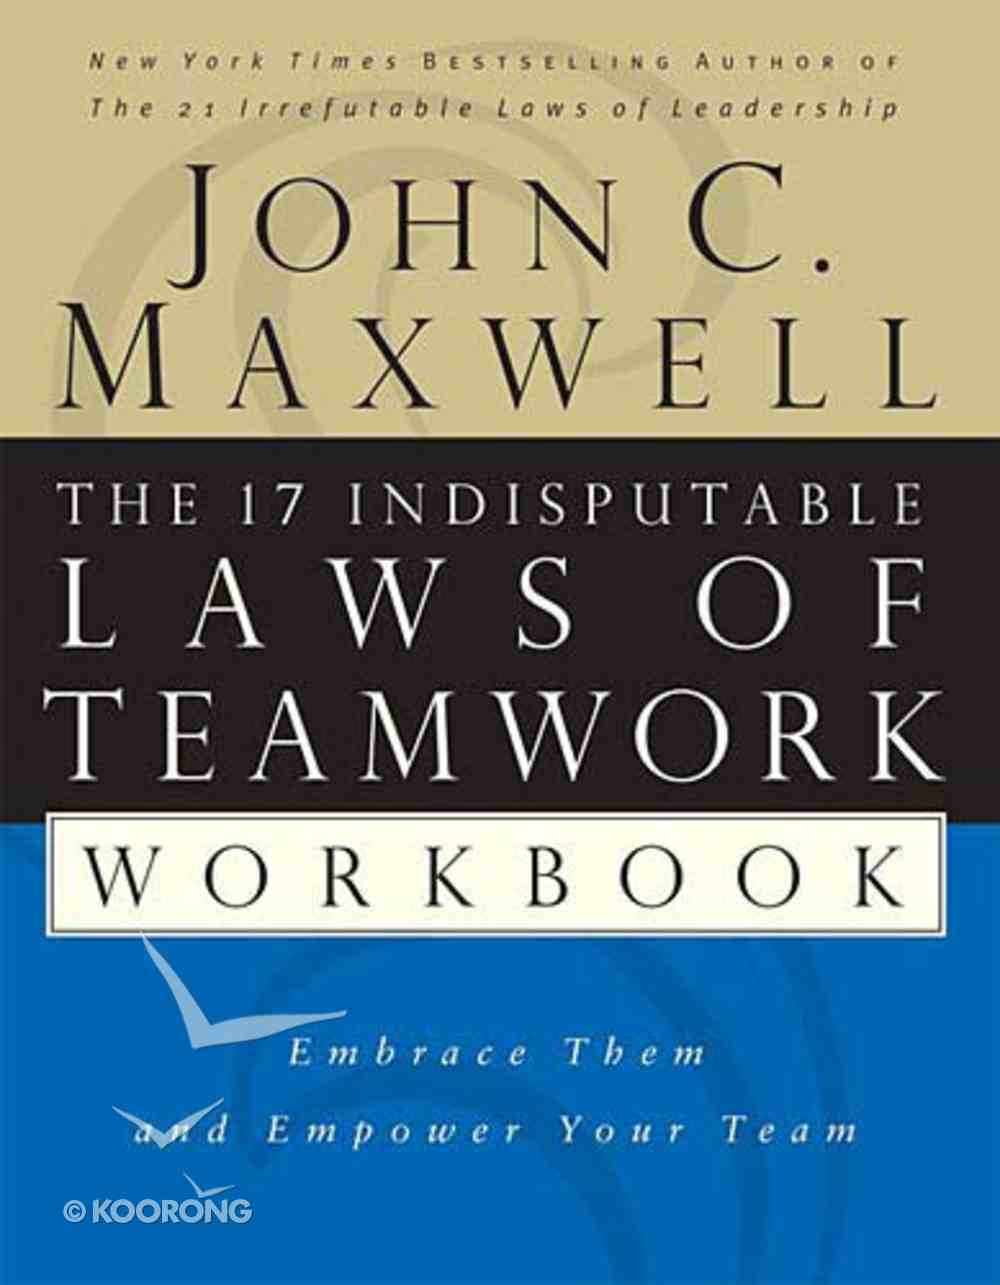 The 17 Indisputable Laws of Teamwork: Embrace Them & Empower Your Team (Workbook) Paperback